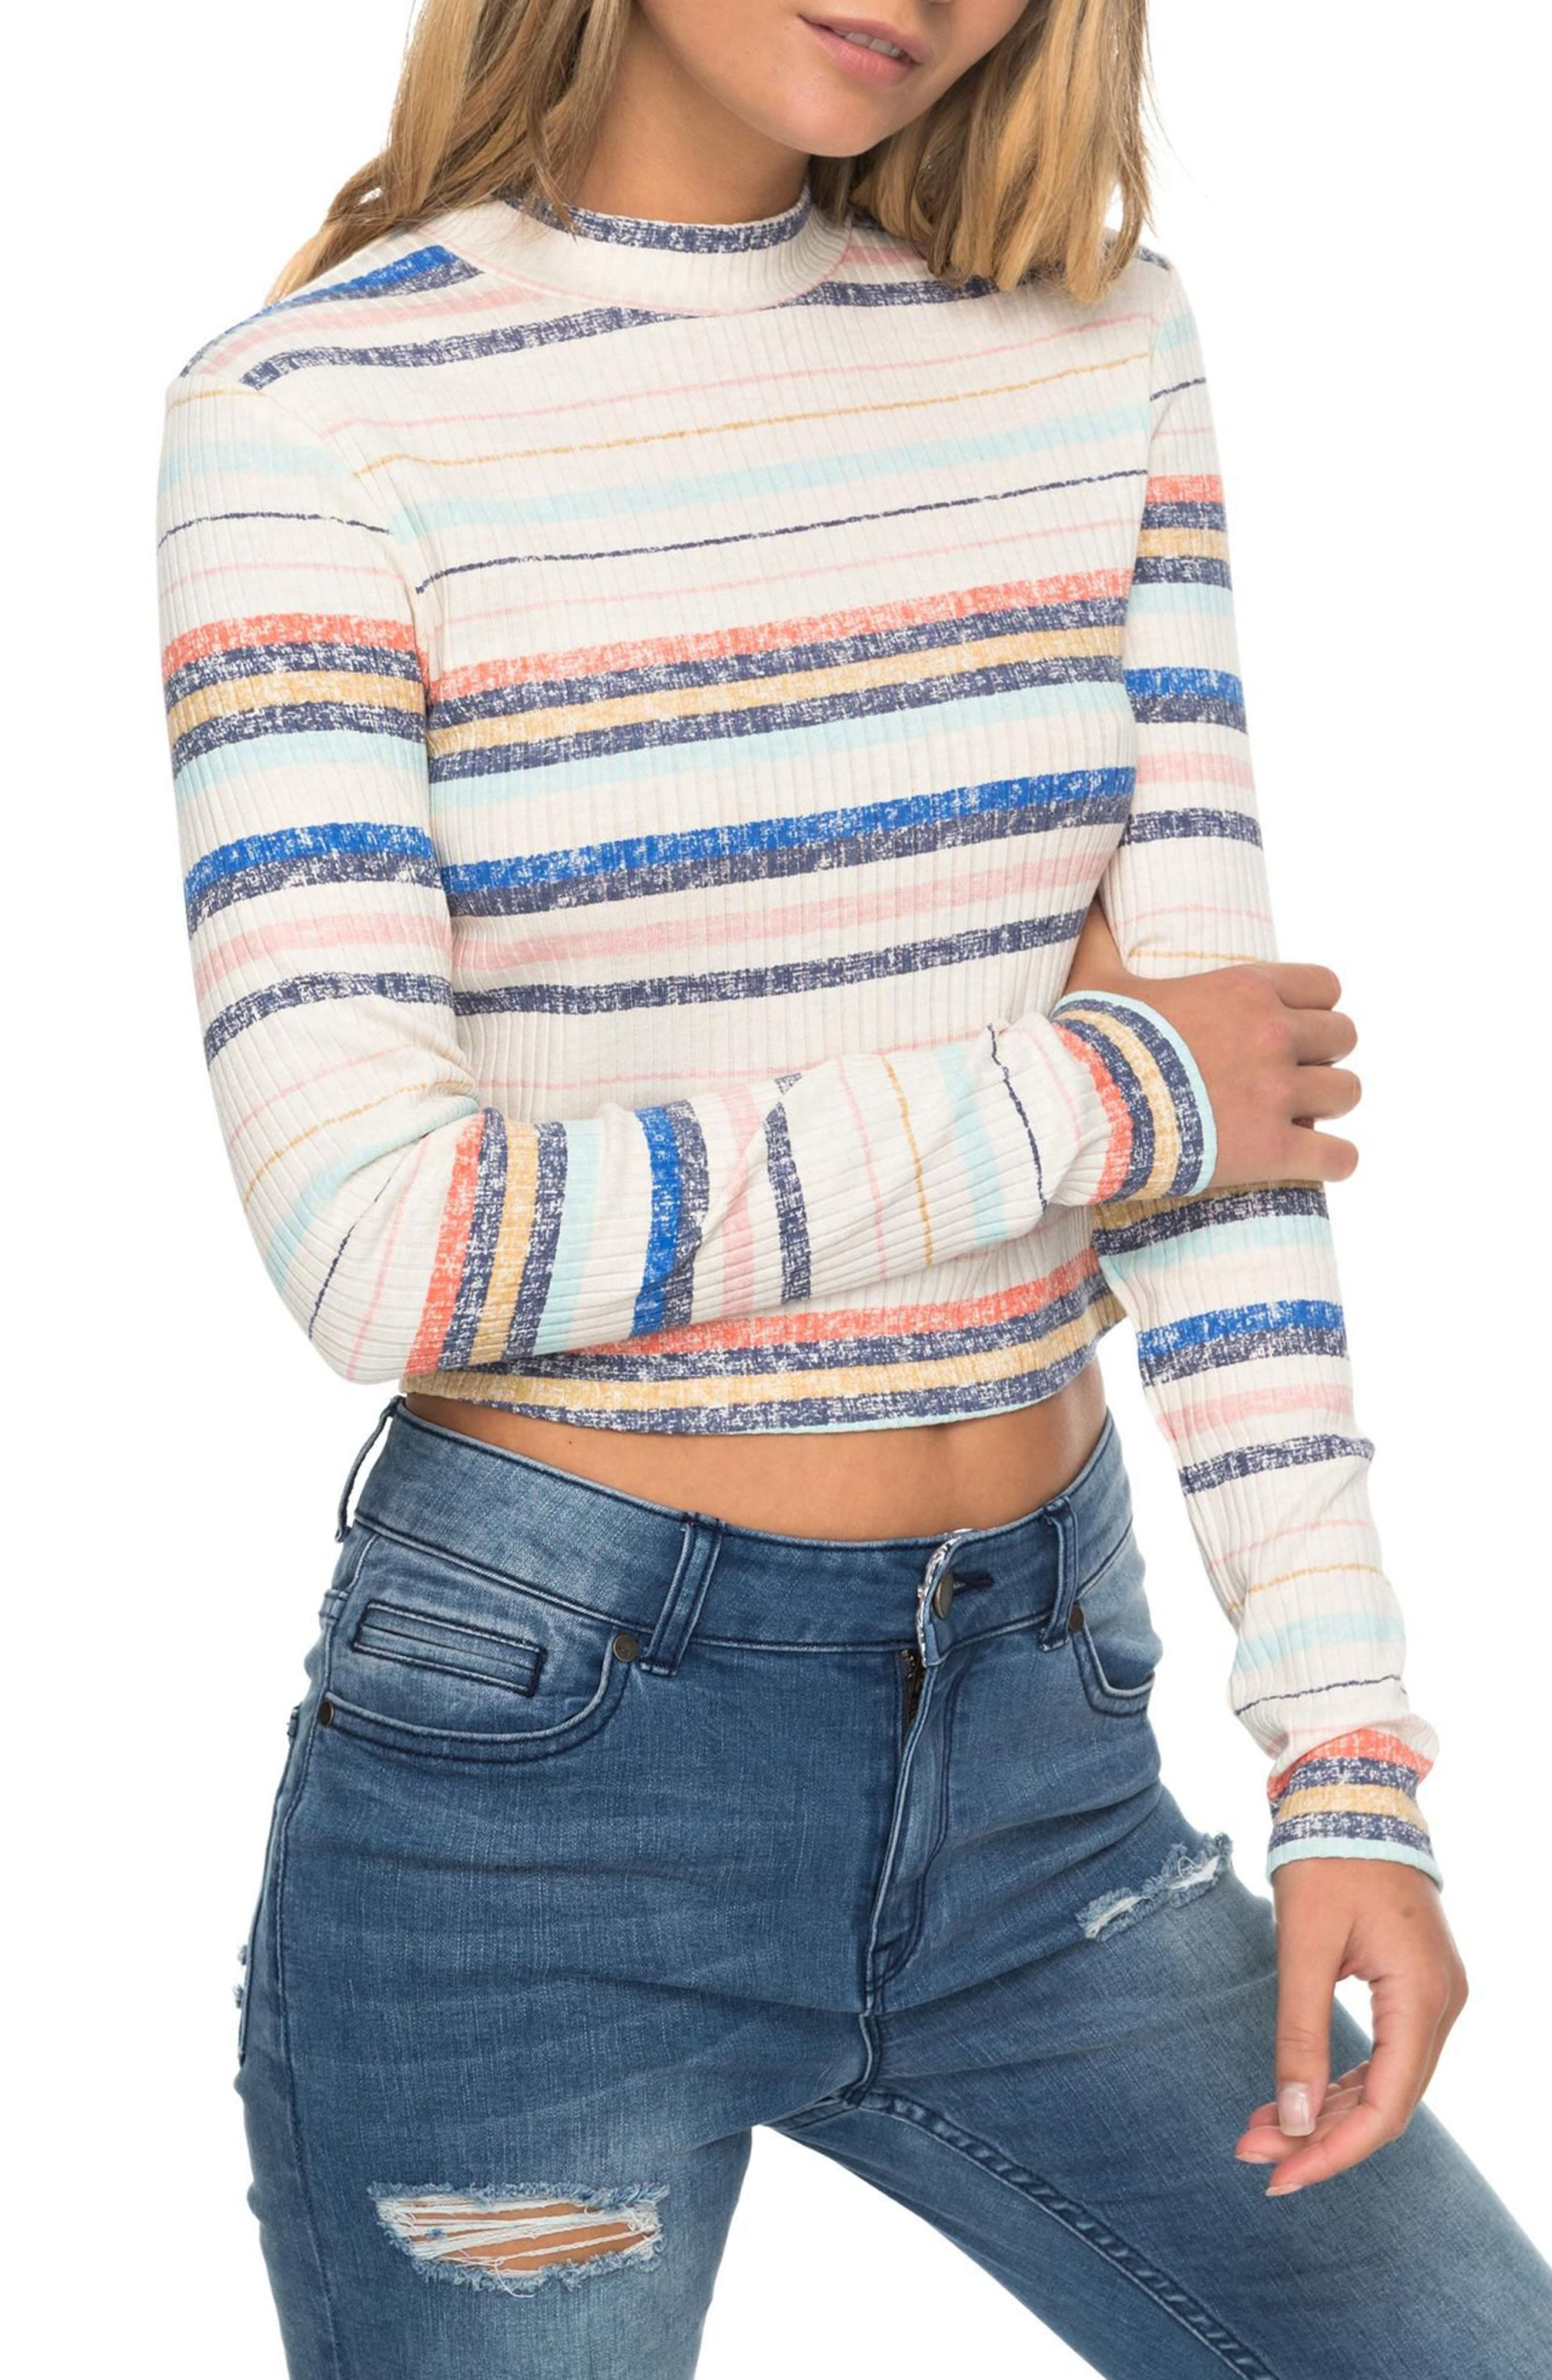 Main Image - Roxy Smooth Move Mock Neck Crop Sweater